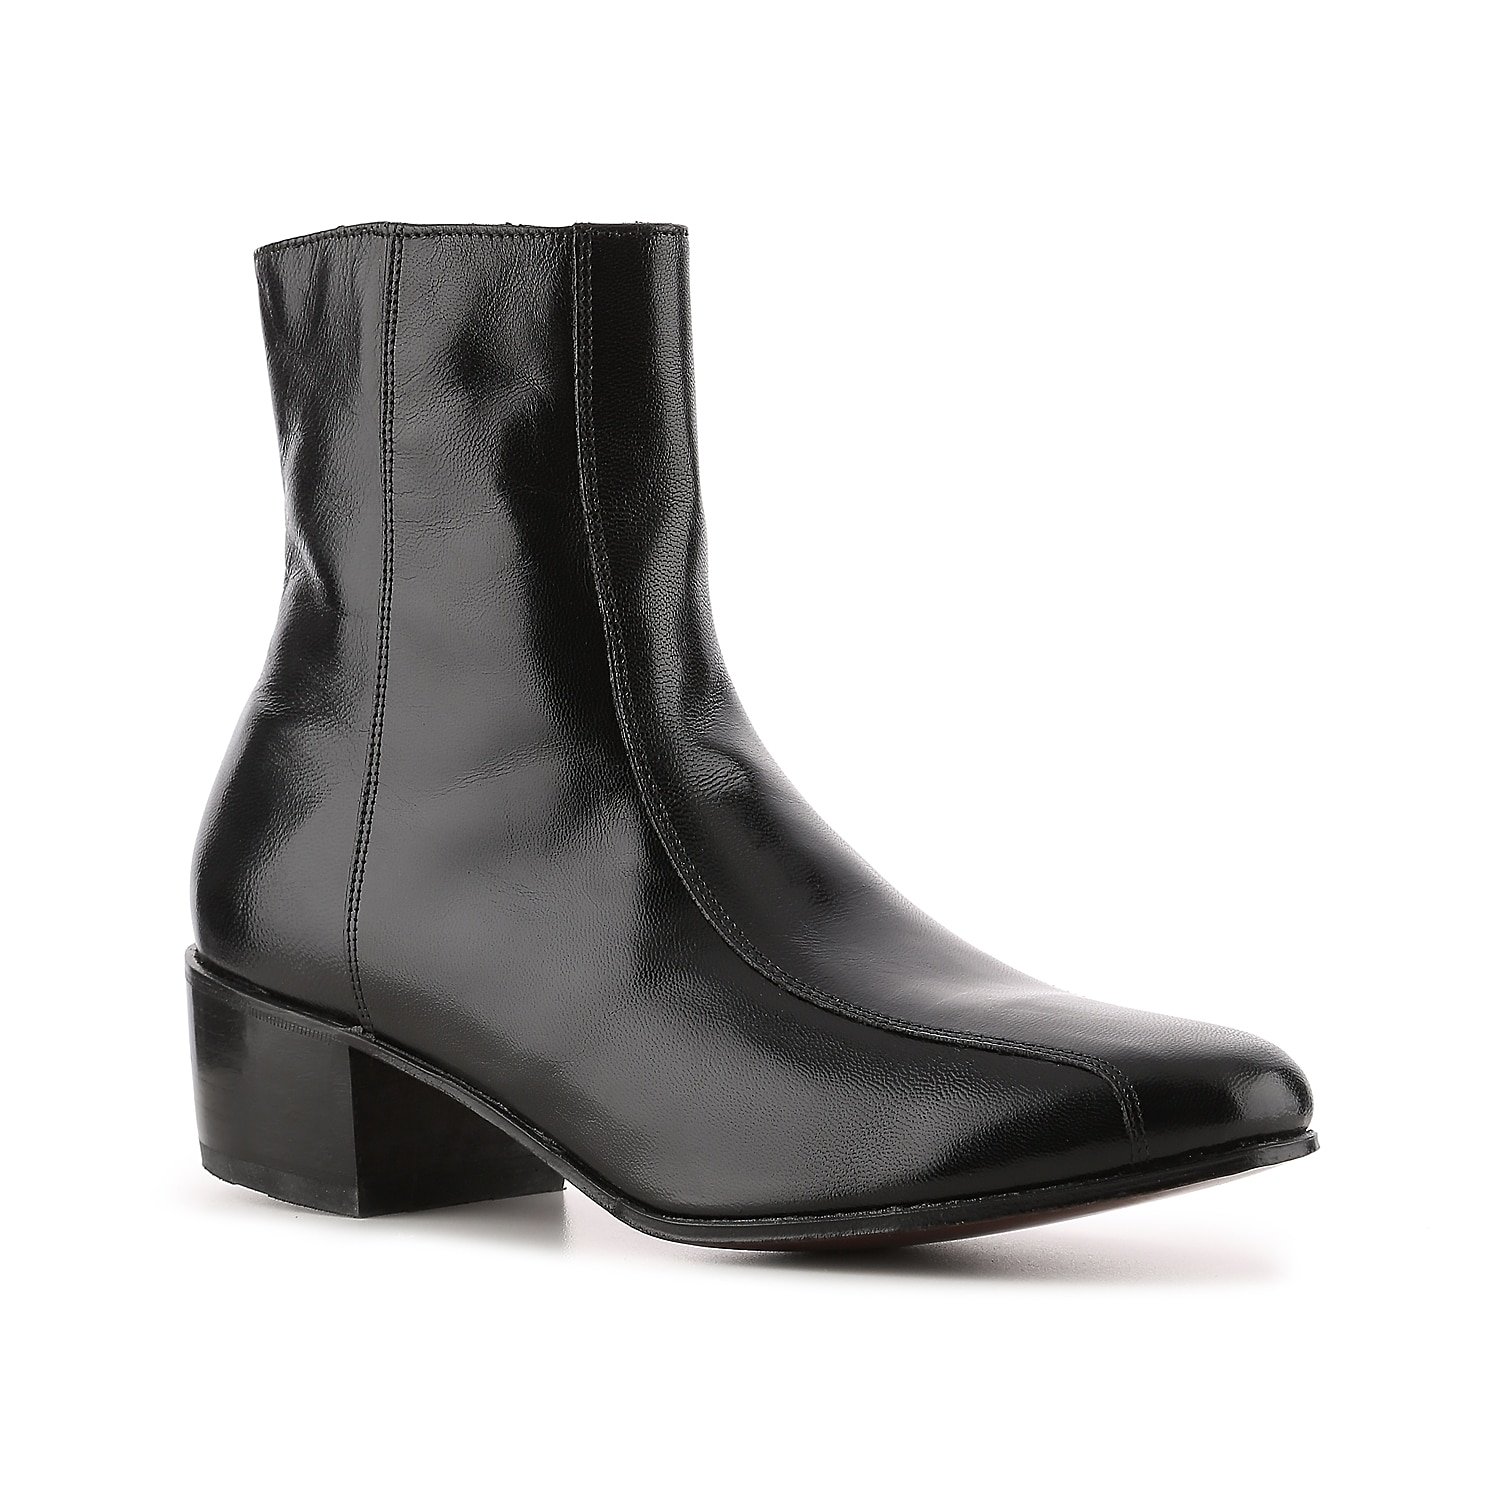 A dress boot that is perfect for just about any occasion, the Duke boot from Florsheim can take you places! This high quality leather side-zip boot provides a polished, sophisticated look.